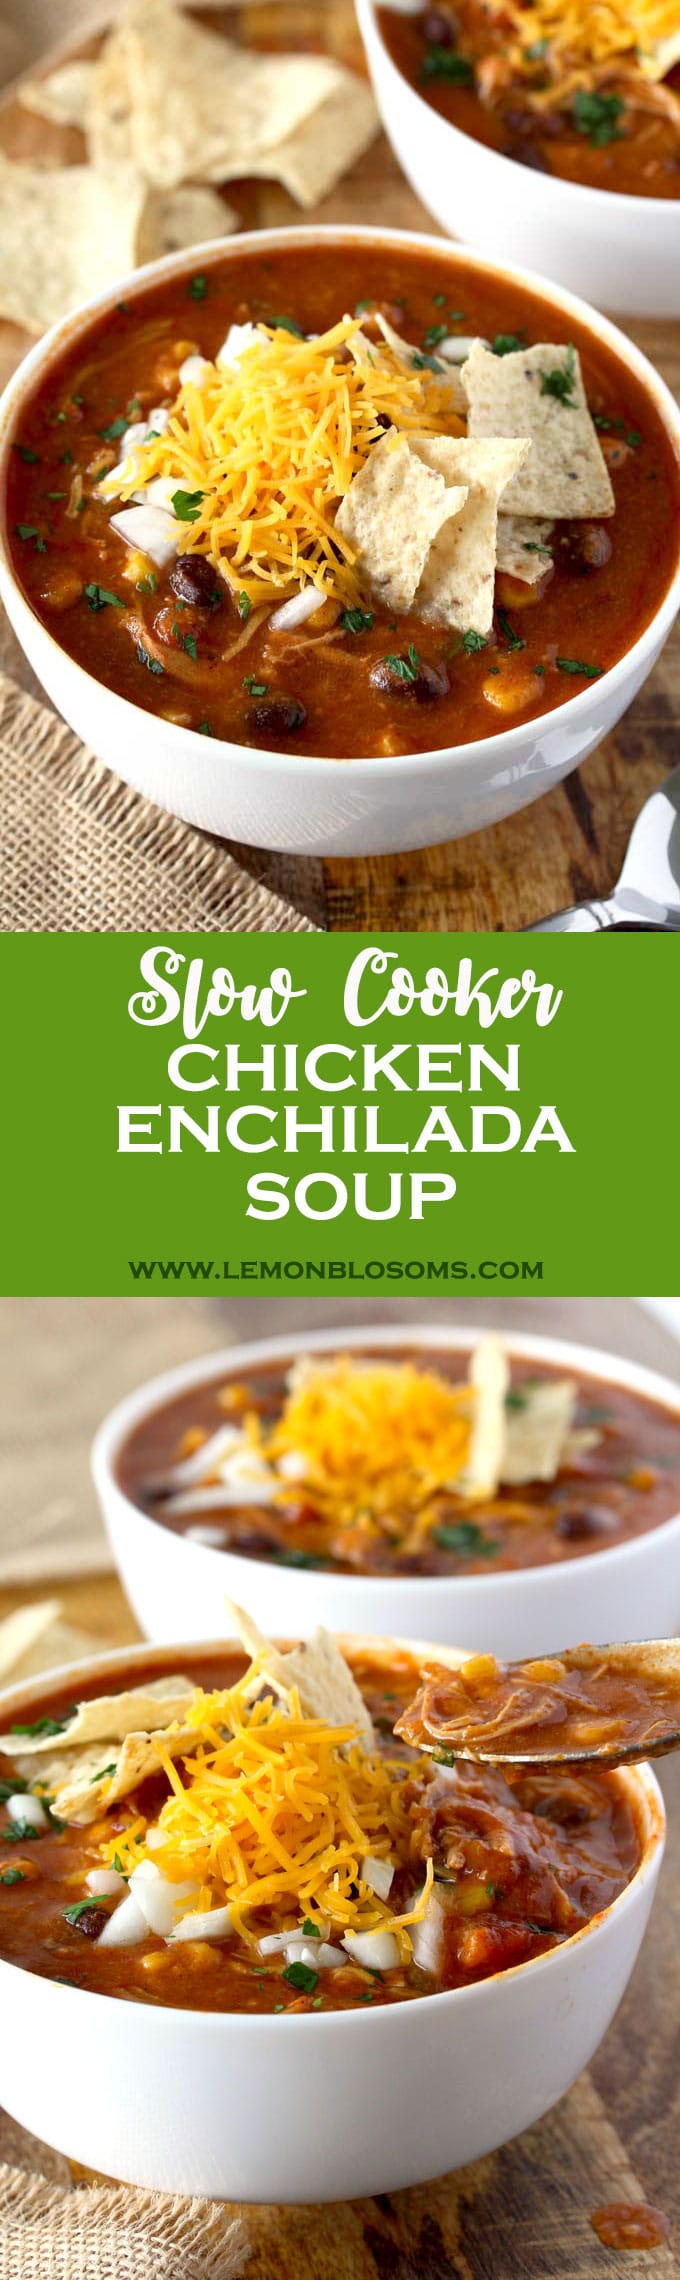 This Slow Cooker Chicken Enchilada Soup is bursting with flavor! Cheesy, creamy and full of shredded chicken, black beans and corn. With only 10 minutes of prep time this soup is pure comfort in a bowl! #slowcooker #crockpot #enchiladasoup #chickenenchilada